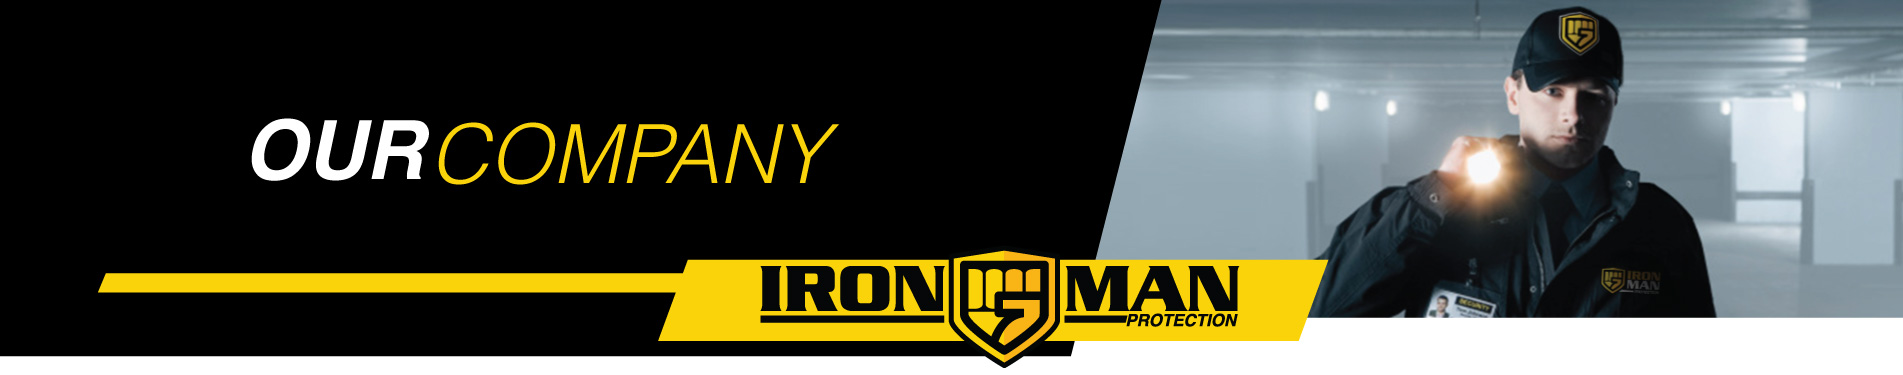 security services Iron Man Protection Houston TX